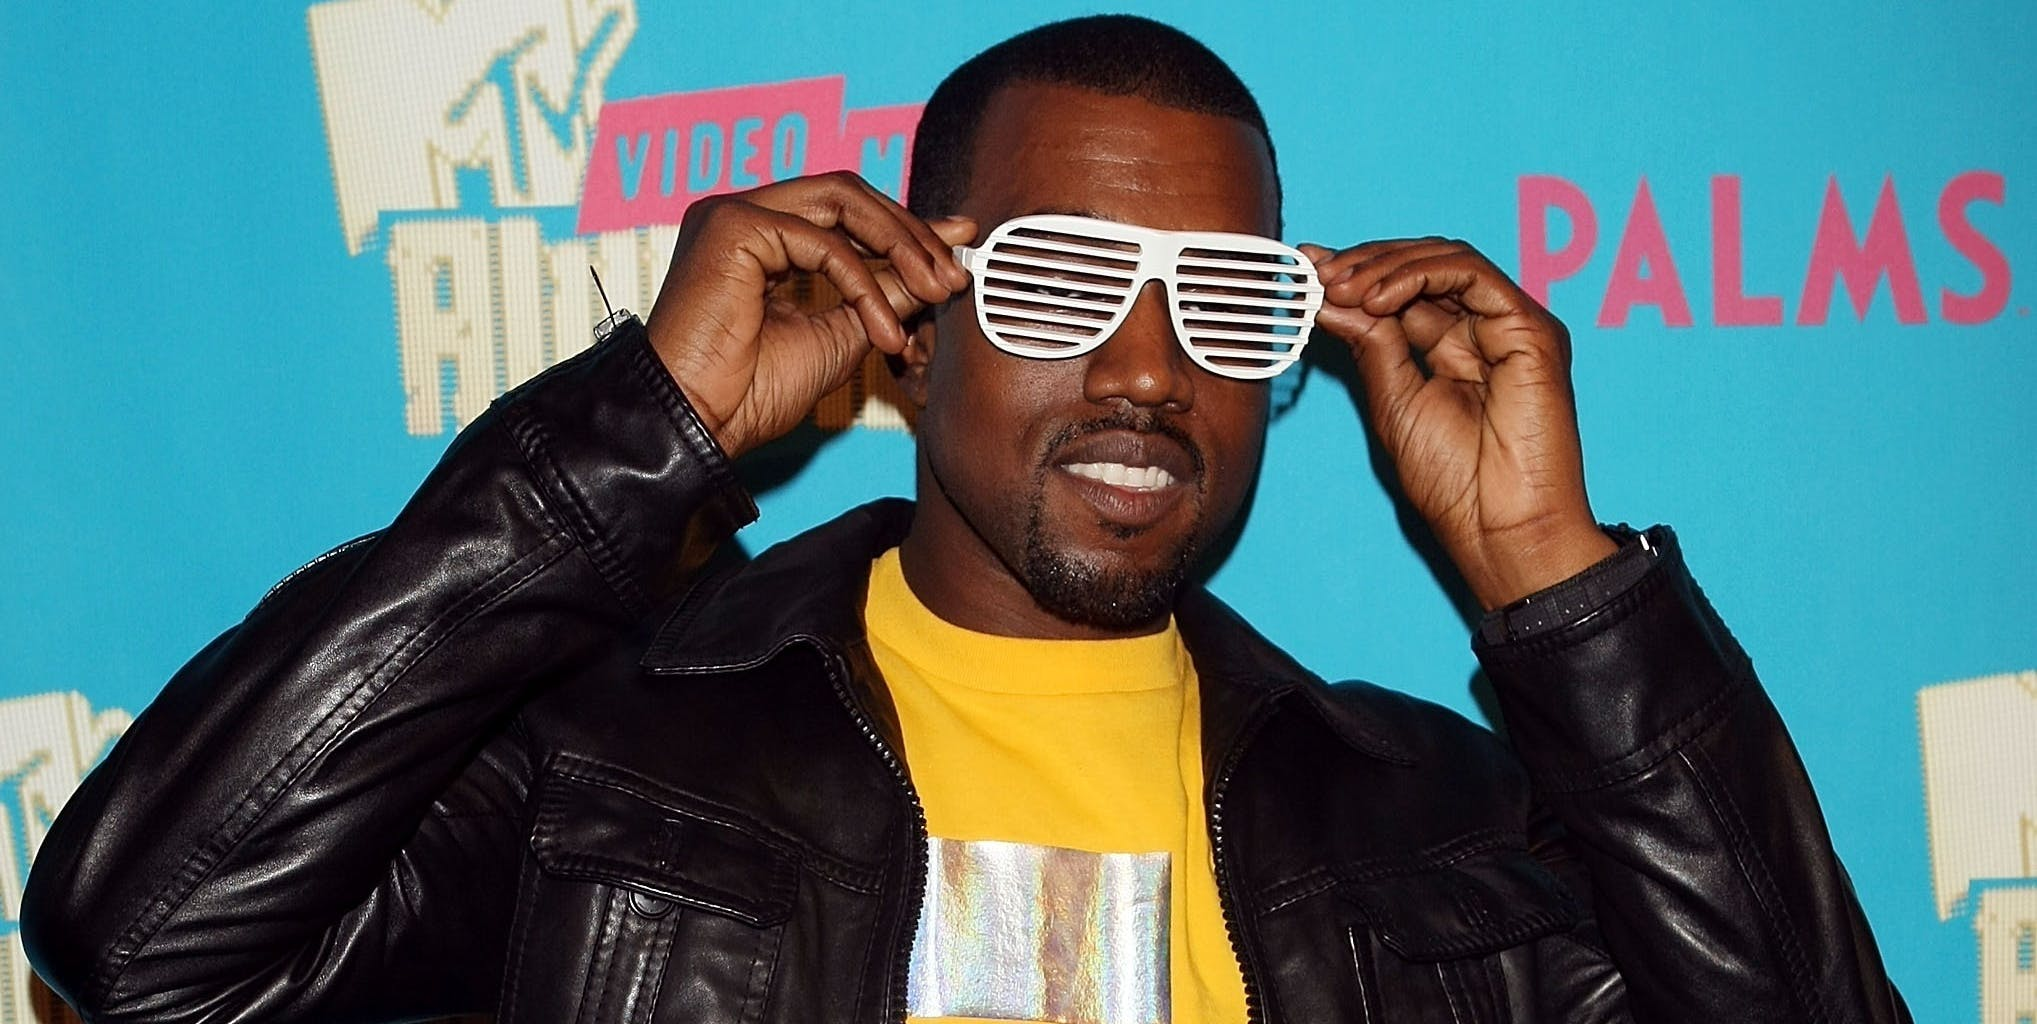 NEW YORK - AUGUST 7:  (U.S. TABS OUT) Rapper Kanye West poses backstage during a special Video Music Awards nominee taping of MTV's Total Request Live August 7, 2007 in New York City.  (Photo by Scott Gries/Getty Images)